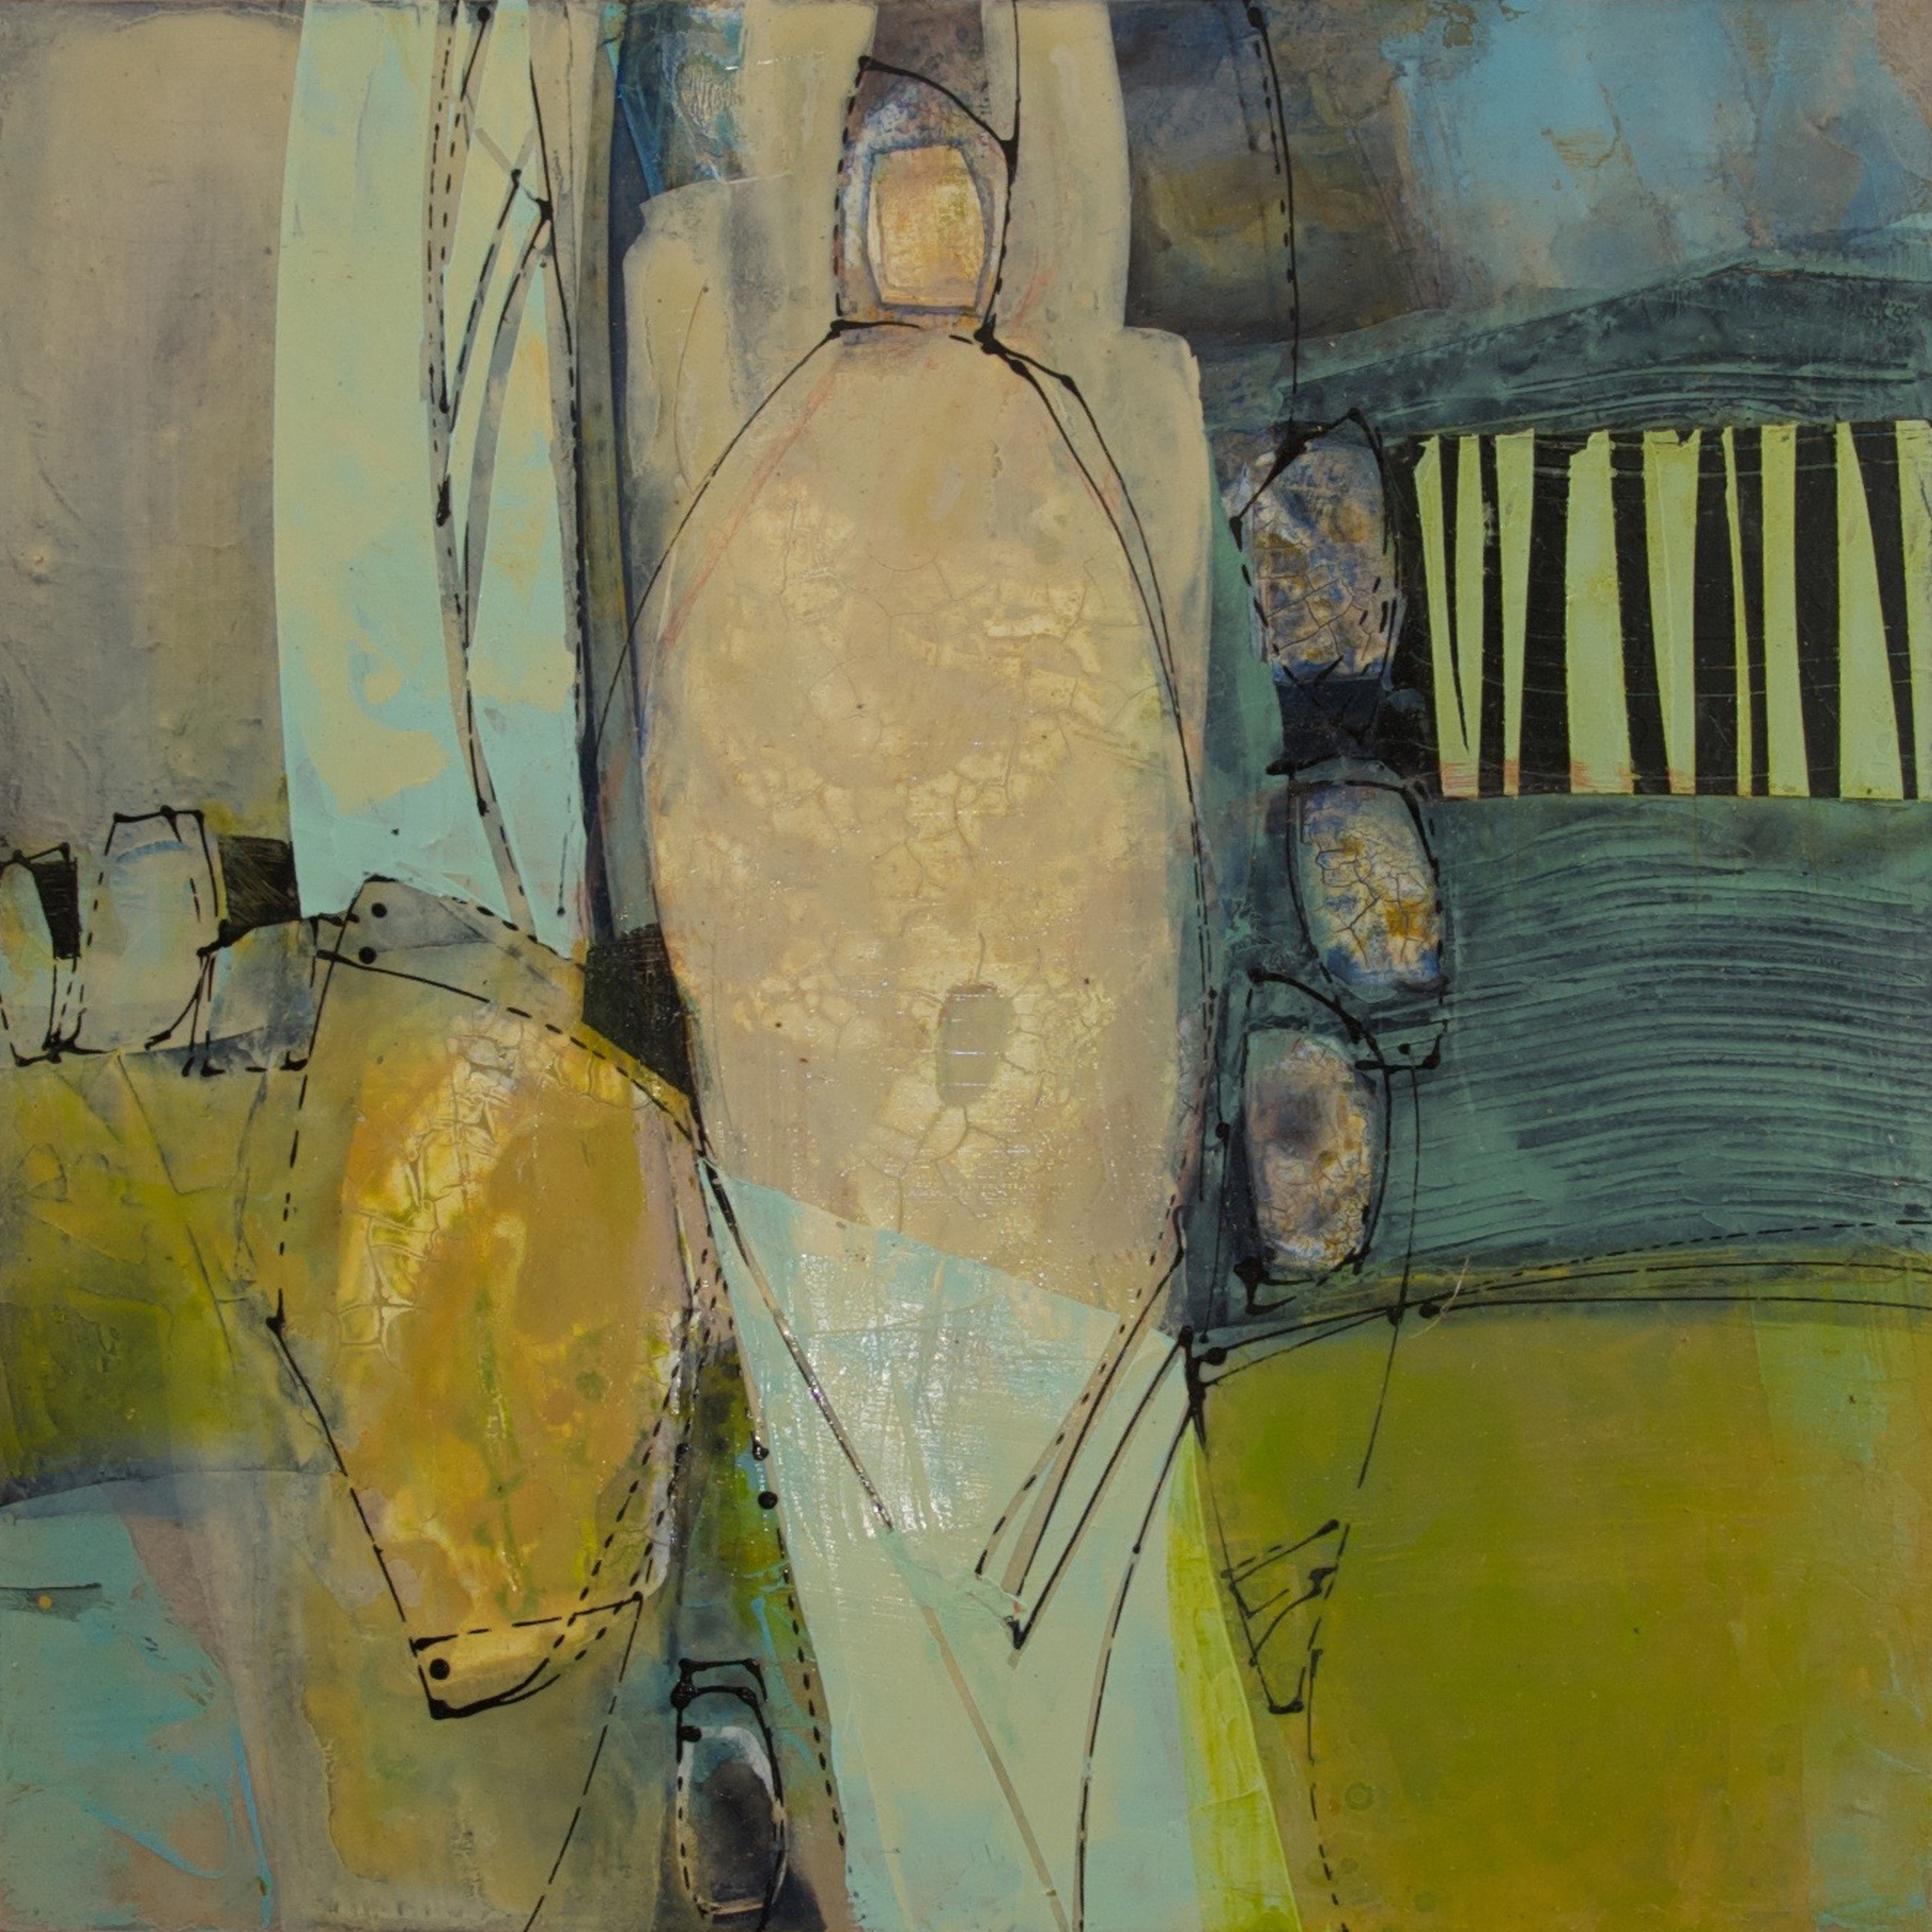 Mending Fences II - Triptych (SOLD)